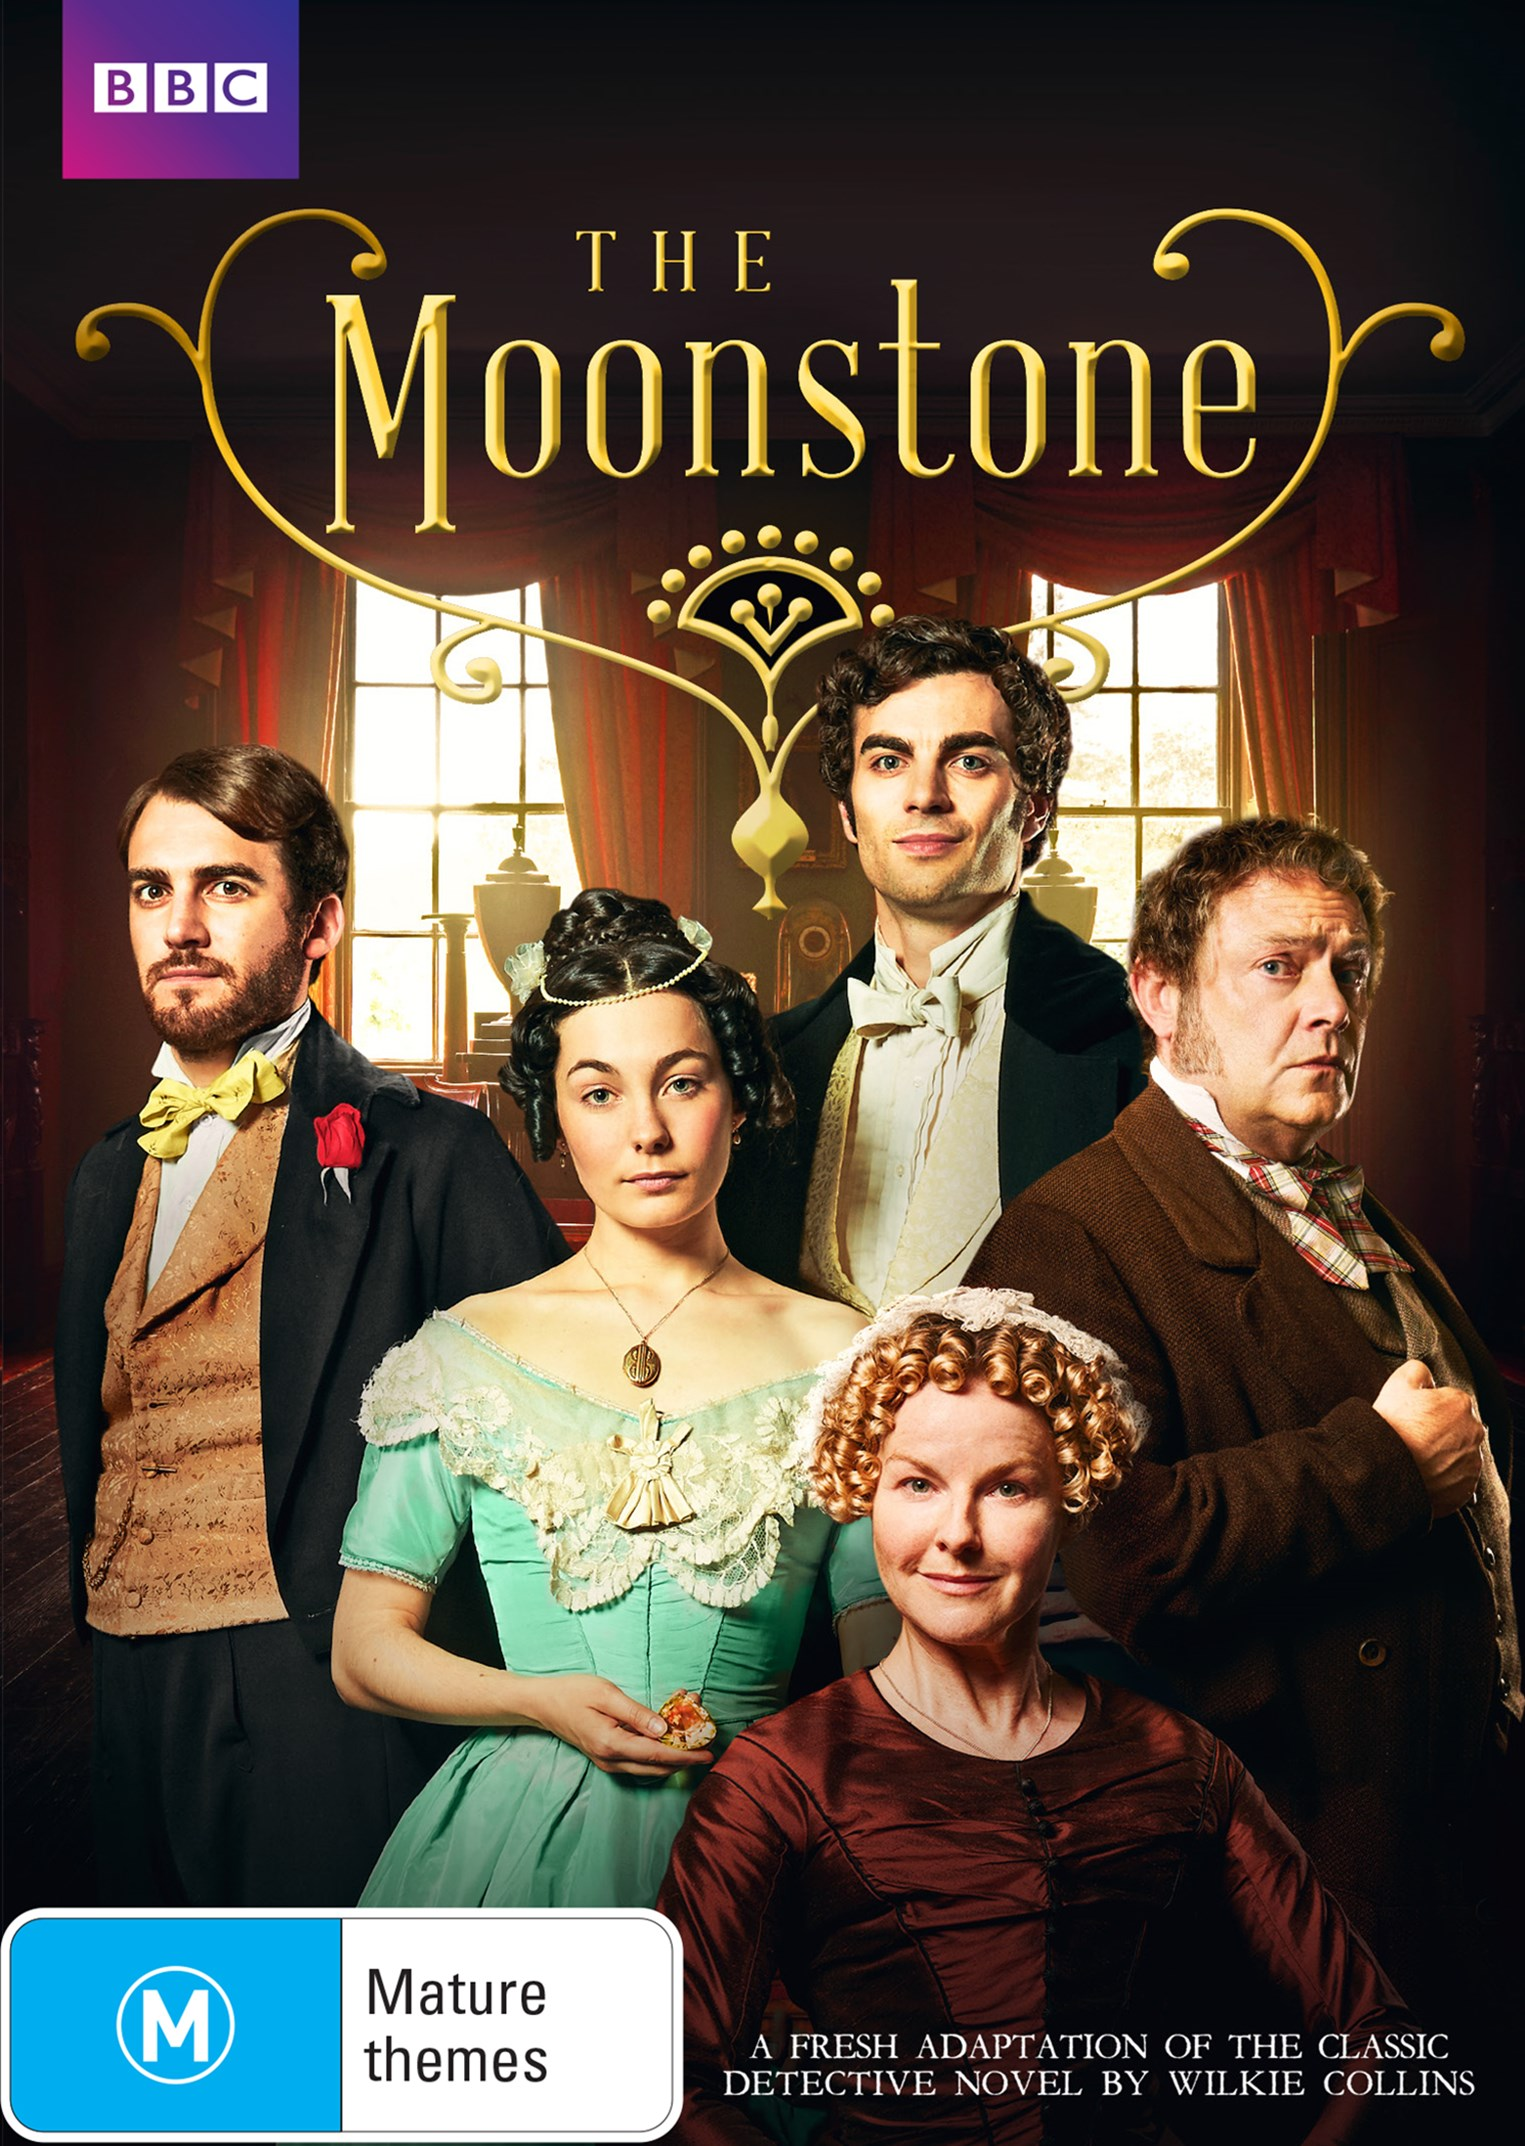 Moonstone, The